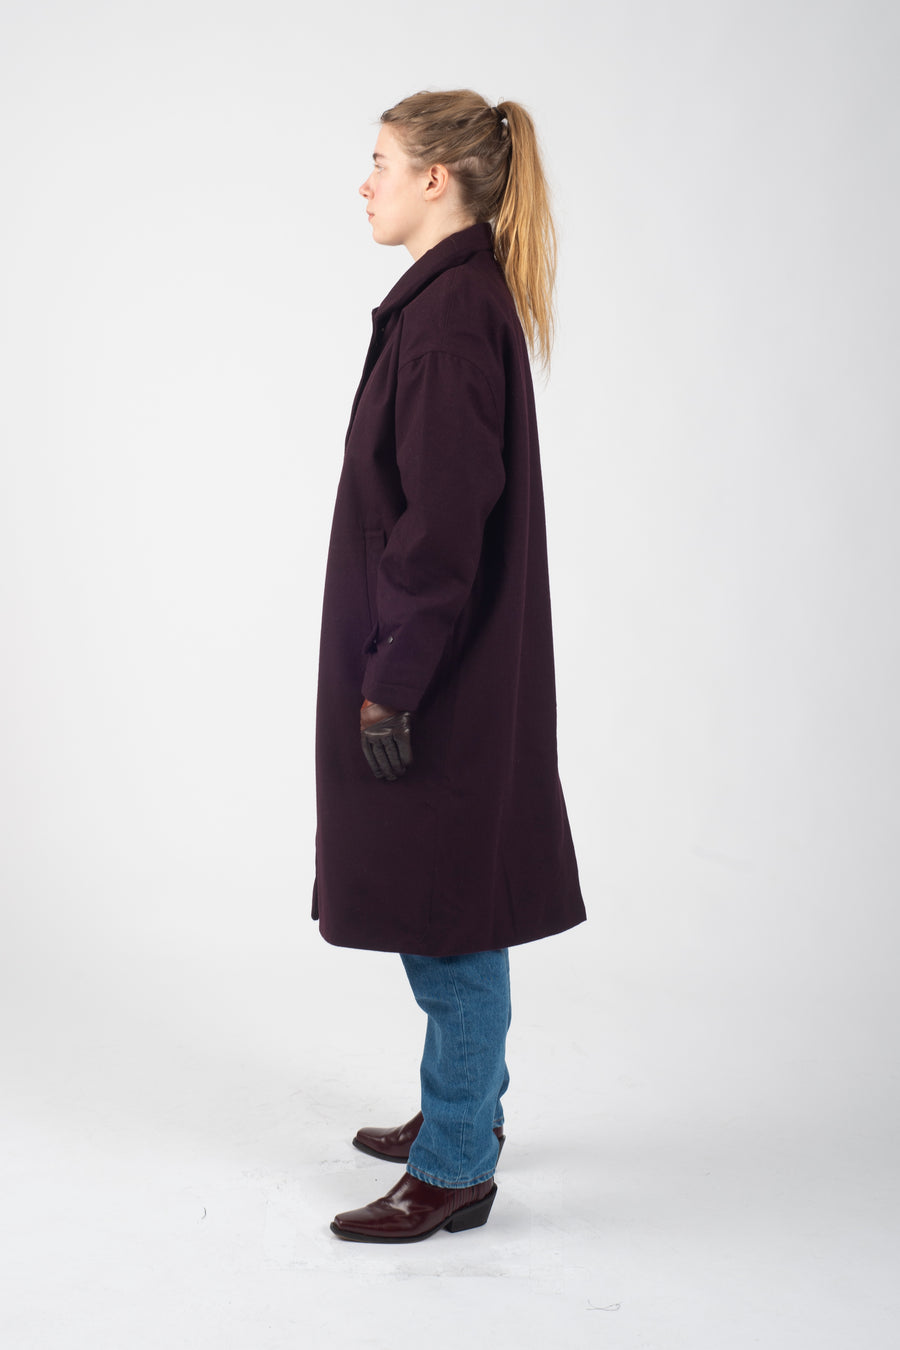 Overcoat Storm Wool System Burgundy - Welter Shelter - Waterproof, Windproof, breathable Packable